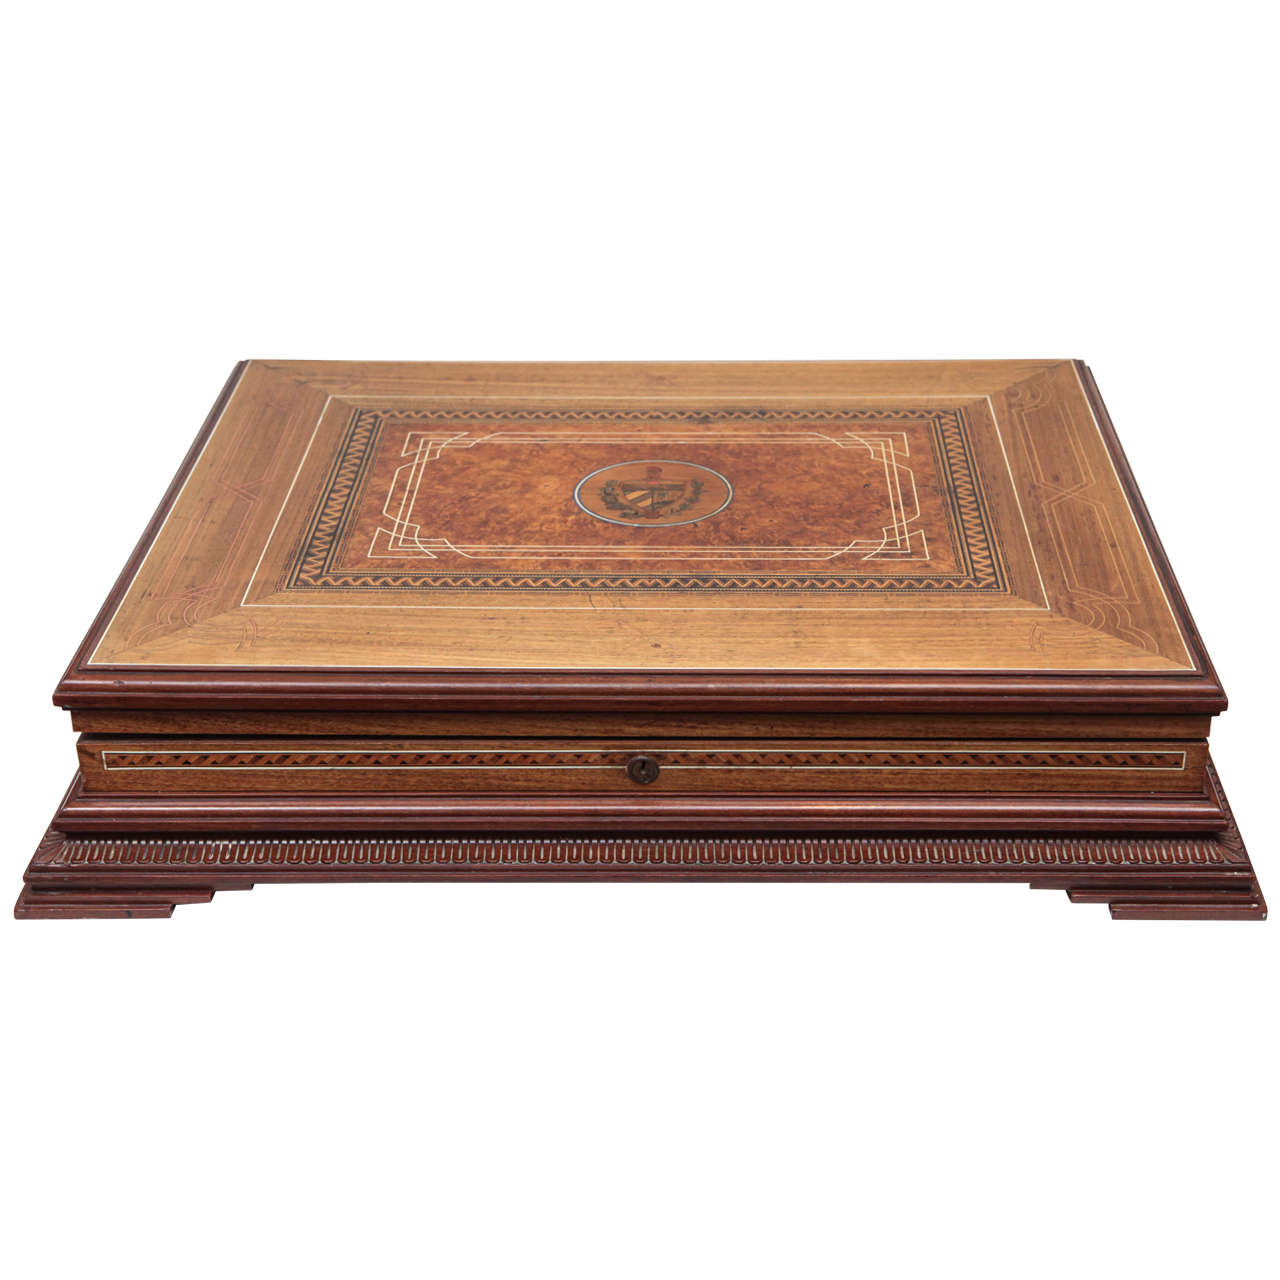 Circa 1940 cuban cigar box elaborate inlay for sale at 1stdibs for Furniture box